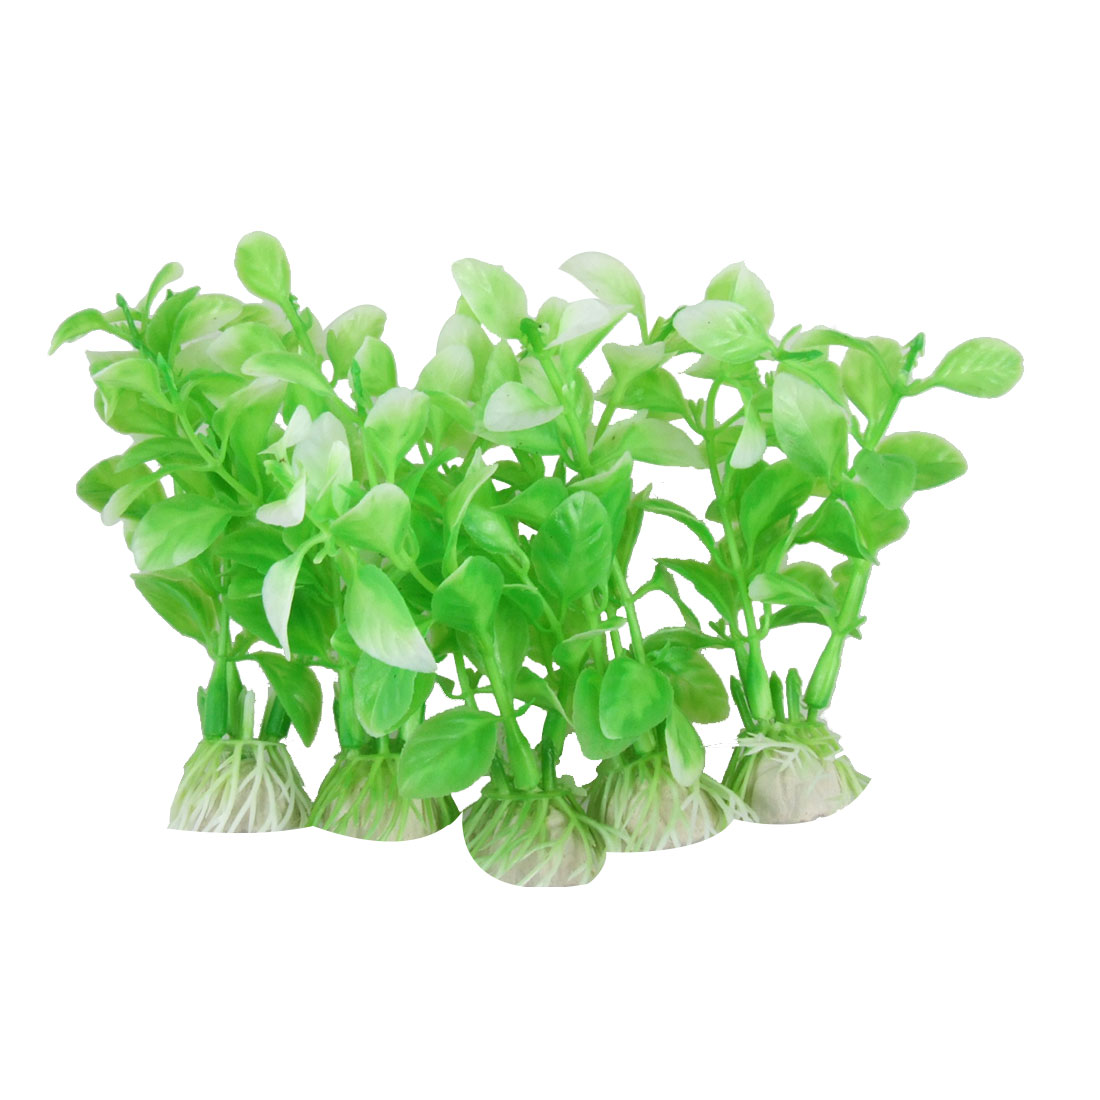 5Pcs Green Plastic Leaf Artificial Plants Decoration for Aquarium Fish Tank